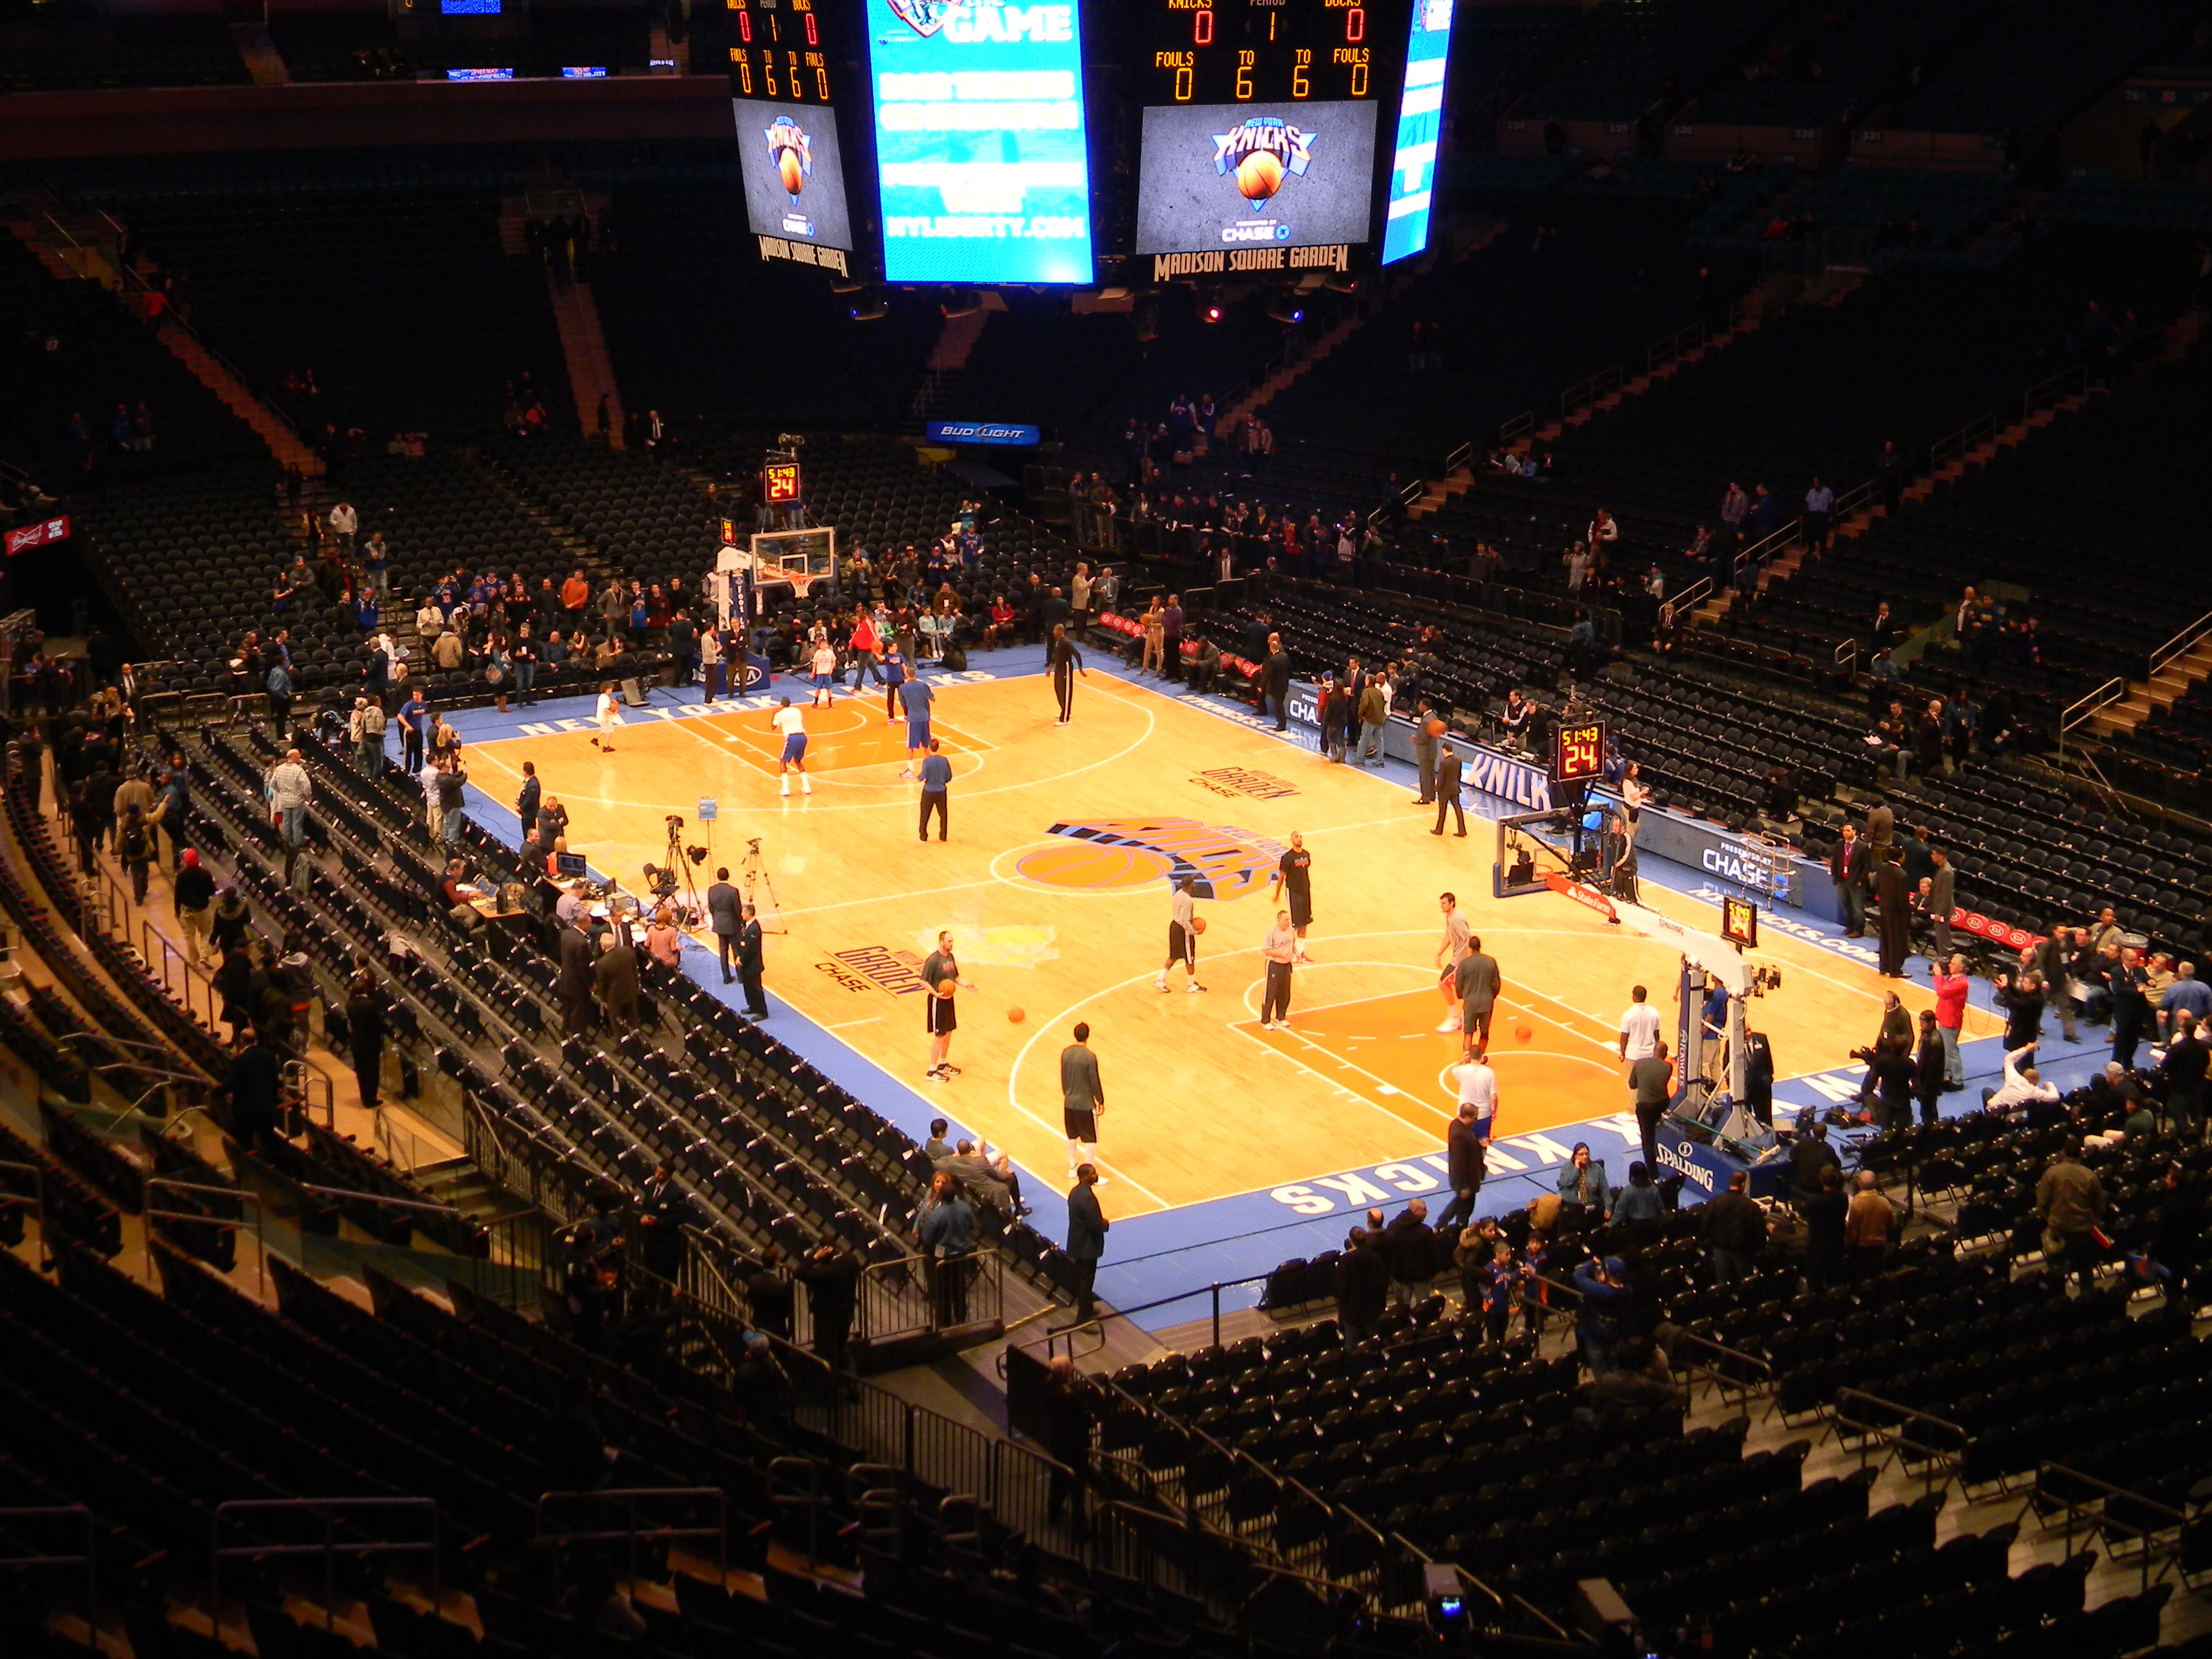 Knicks Continue To Make Moves For 2012 1495sports